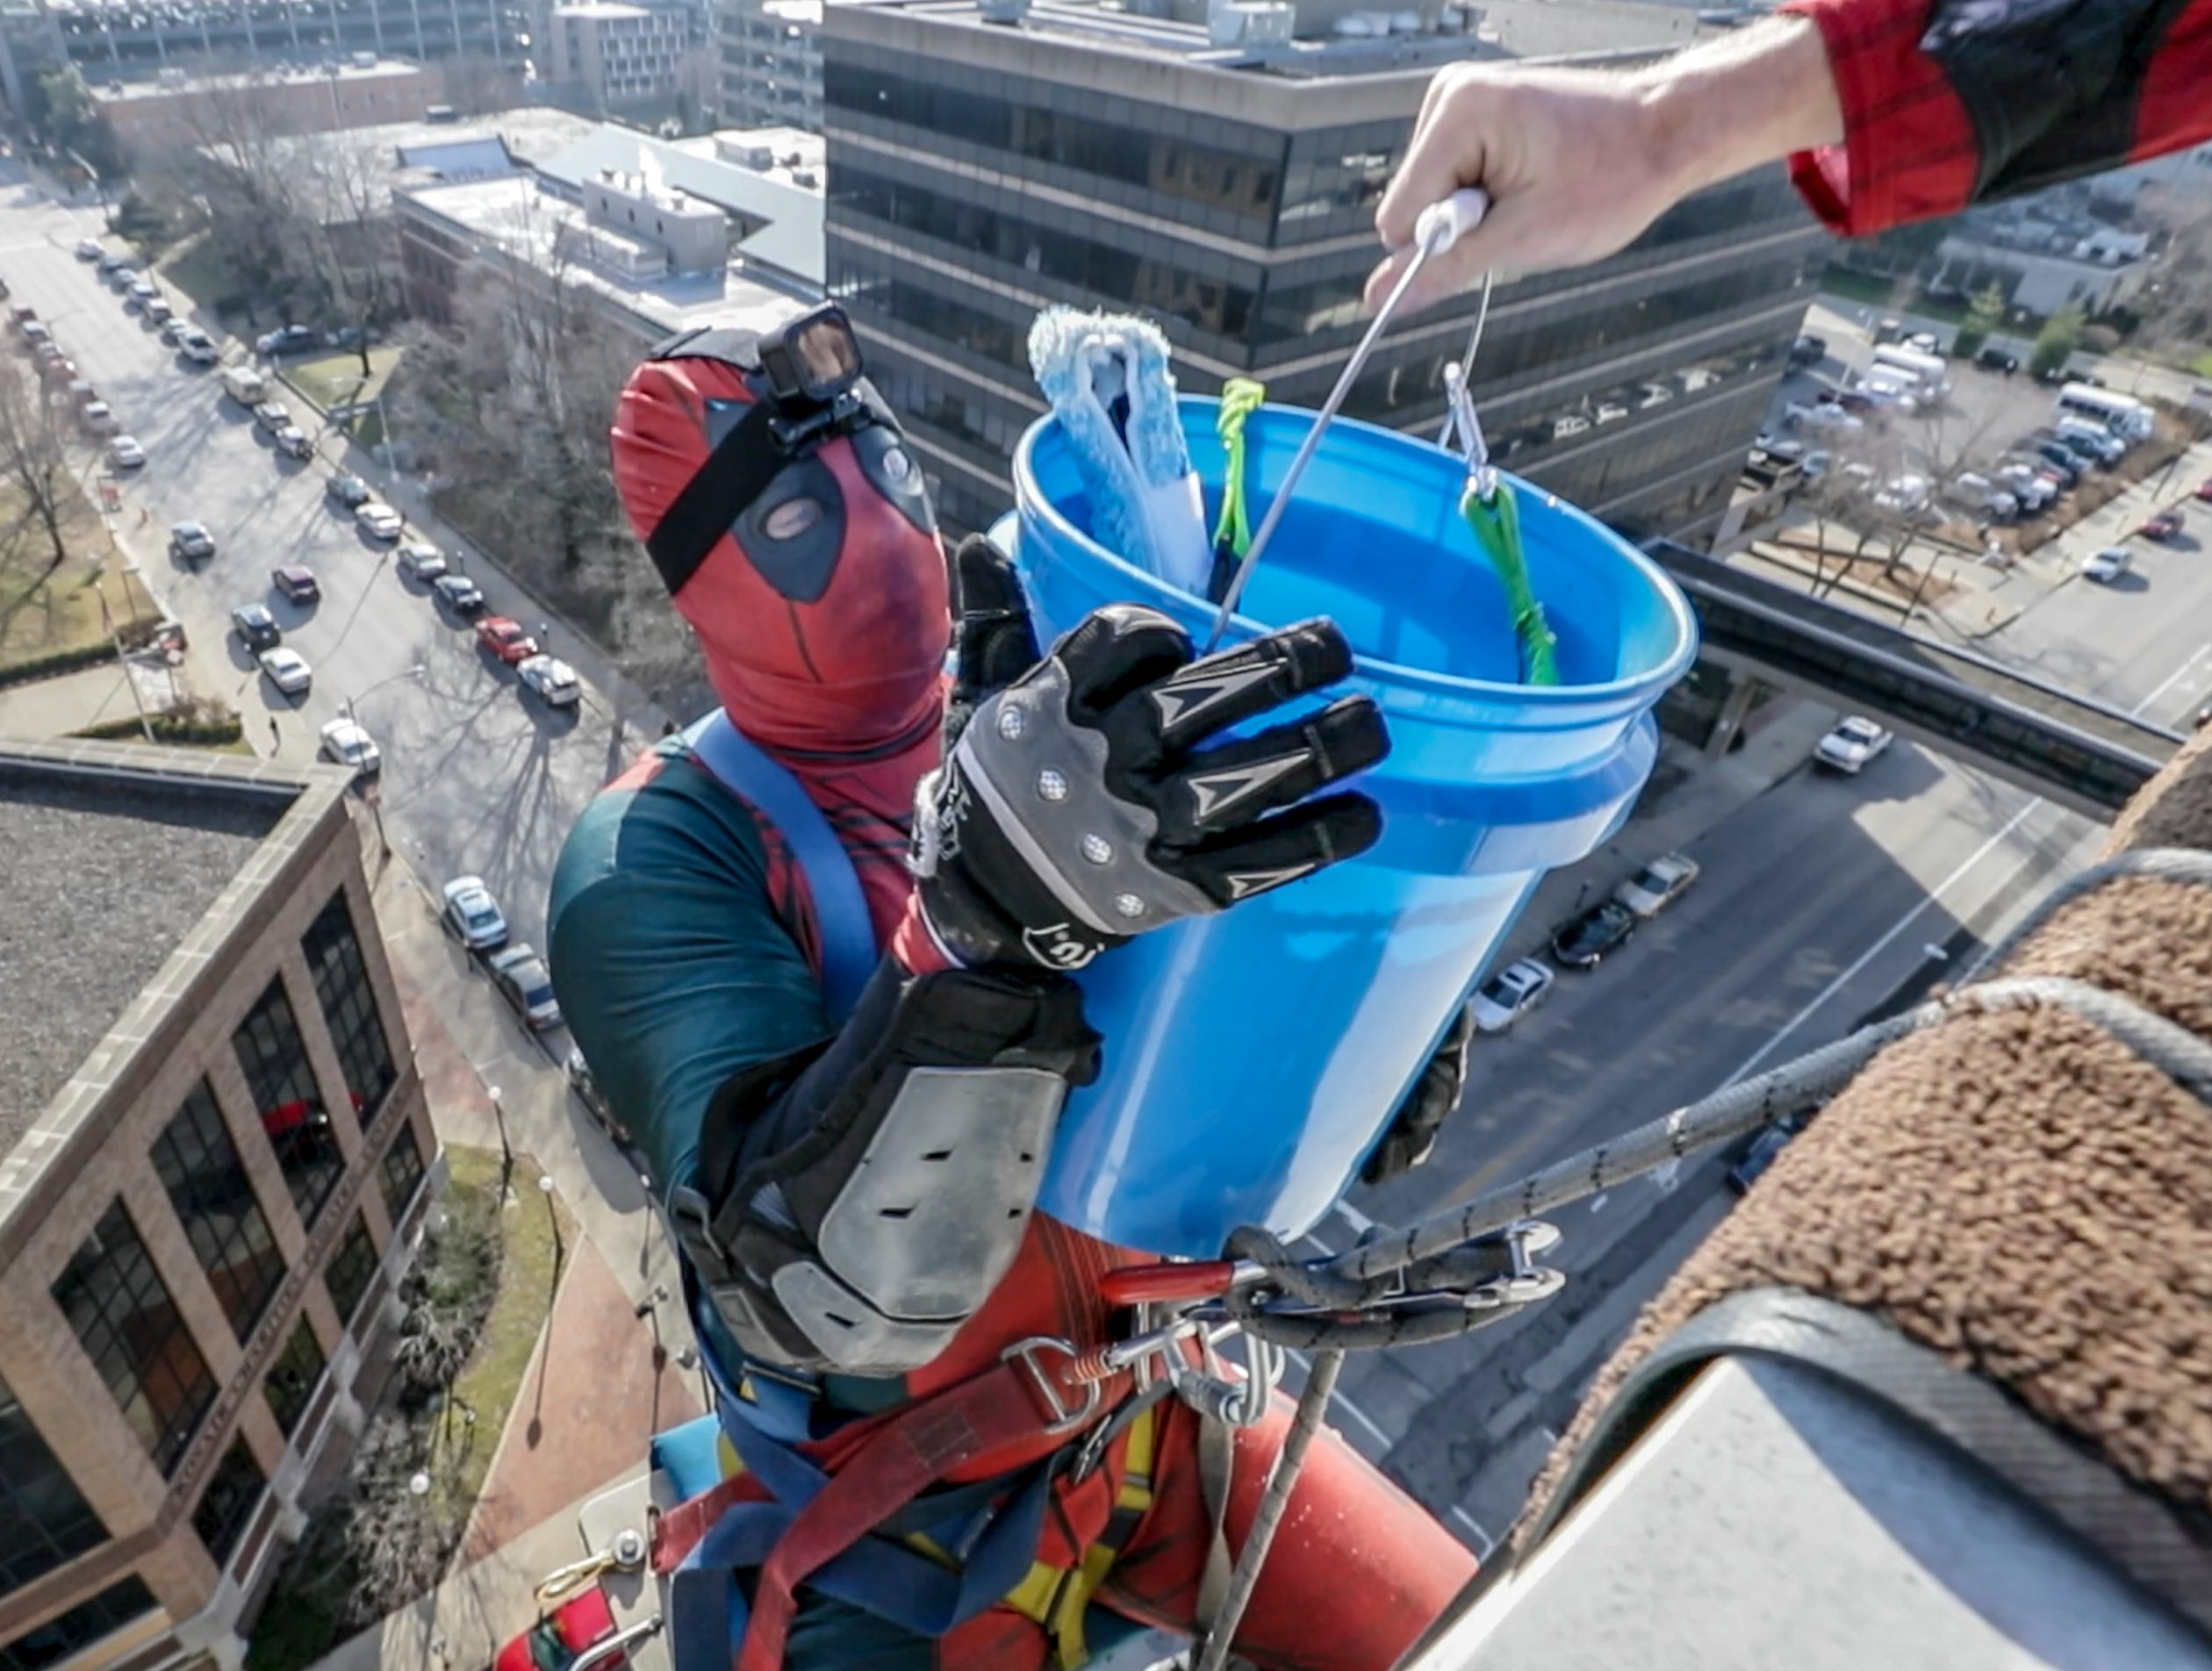 Window washer Johnny Haist, with Pro Clean International, portraying Deadpool, is handed a bucket of window cleaning solution as he prepares to descend from the roof of Norton Children's Hospital on Thursday morning.February 21, 2019